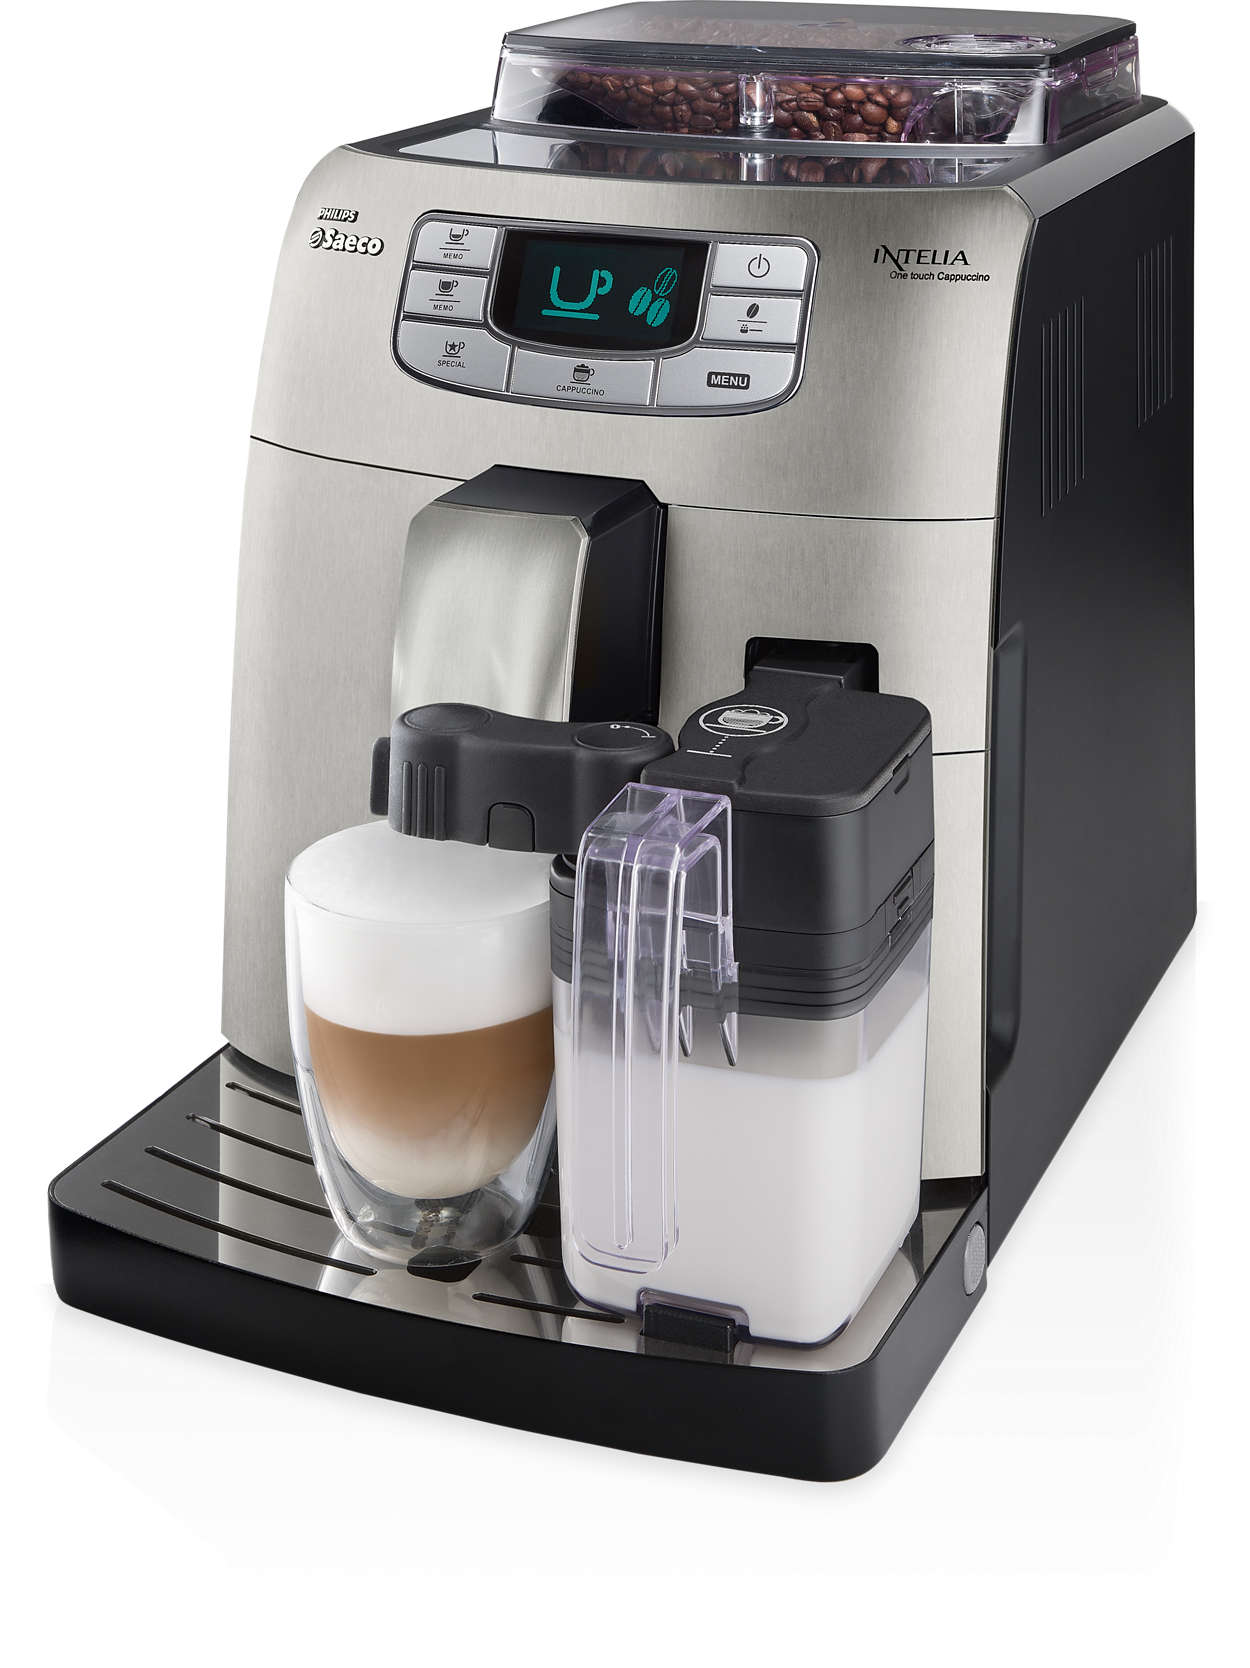 Intelia Super Automatic Espresso Machine Hd8753 87 Saeco